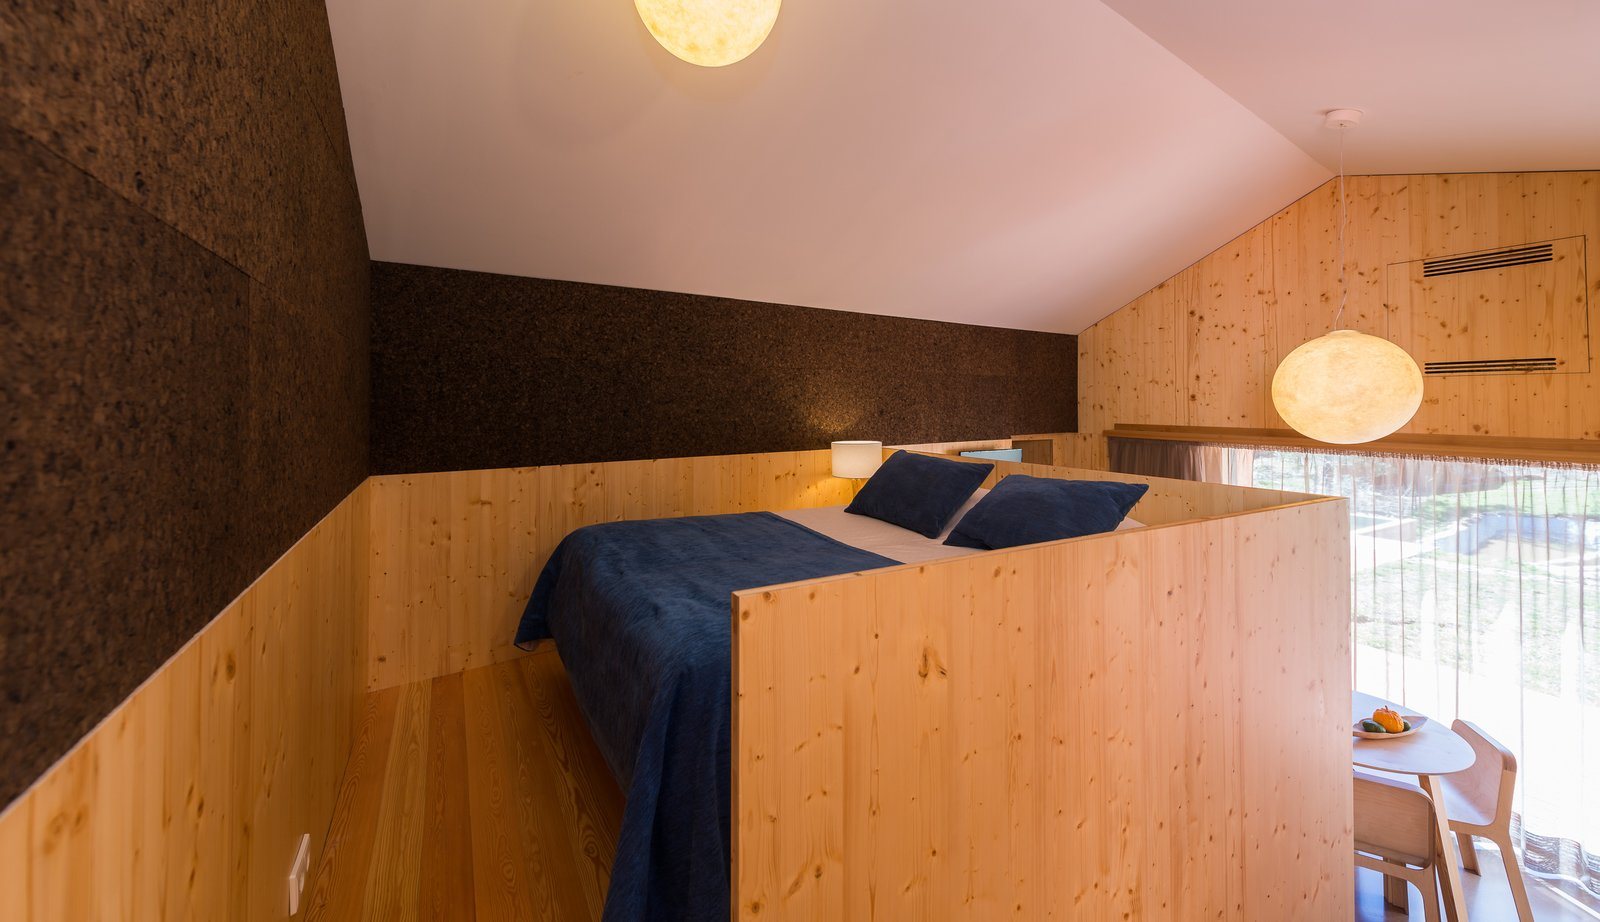 Bedroom, Bed, Ceiling Lighting, Pendant Lighting, Light Hardwood Floor, Lamps, and Table Lighting  Photo 13 of 16 in Stay in a Tiny, Eco-Friendly House in a Portuguese Schist Village